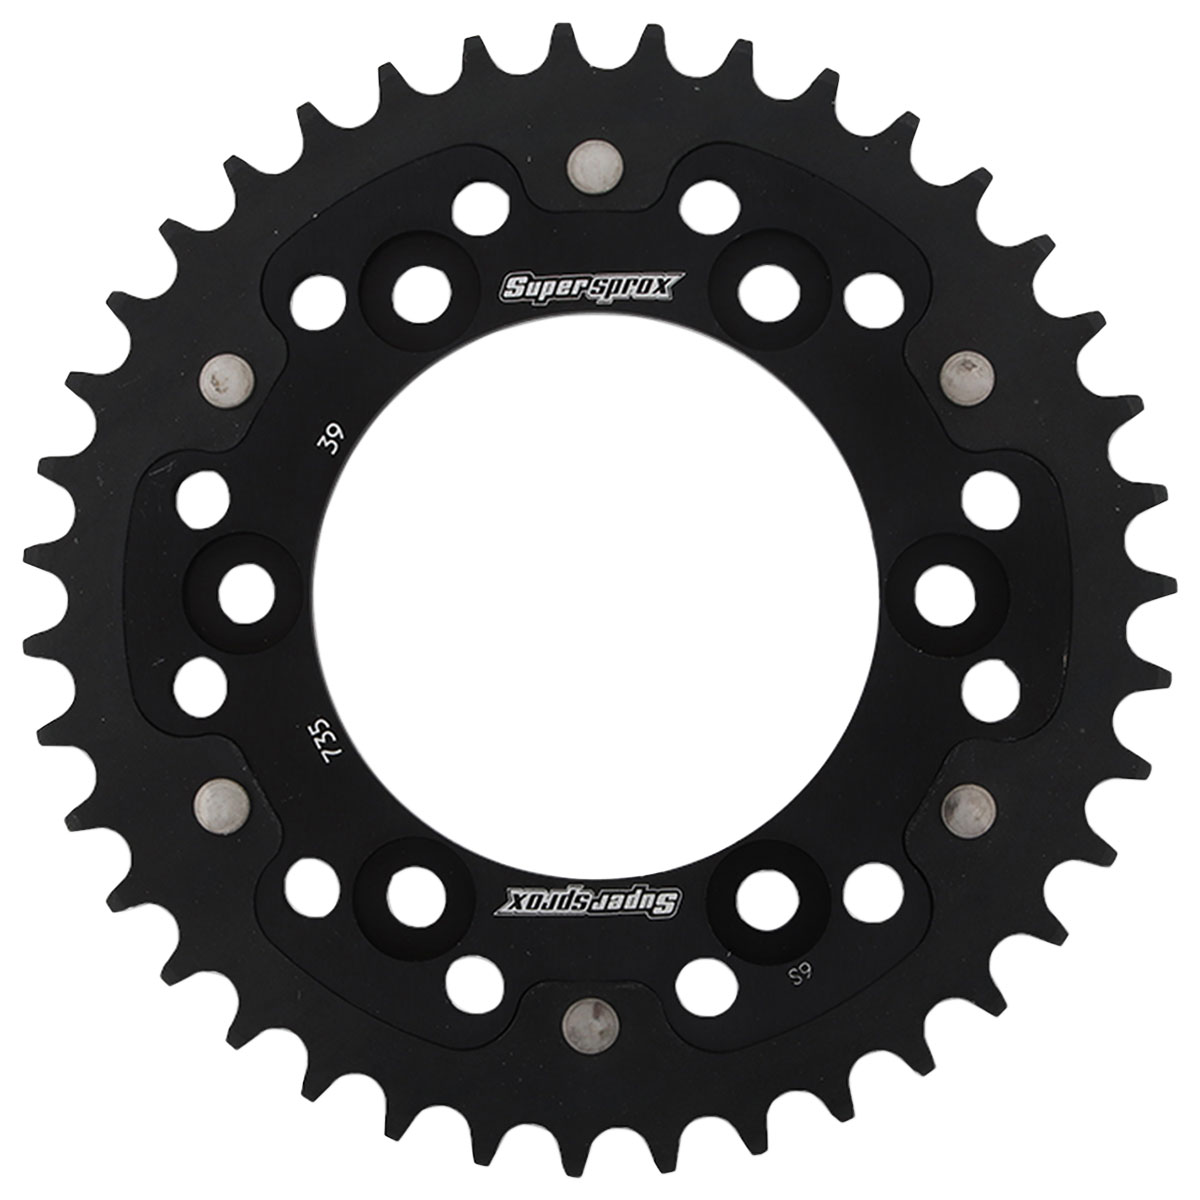 Supersprox Rear Stealth Sprocket 520 39T Black